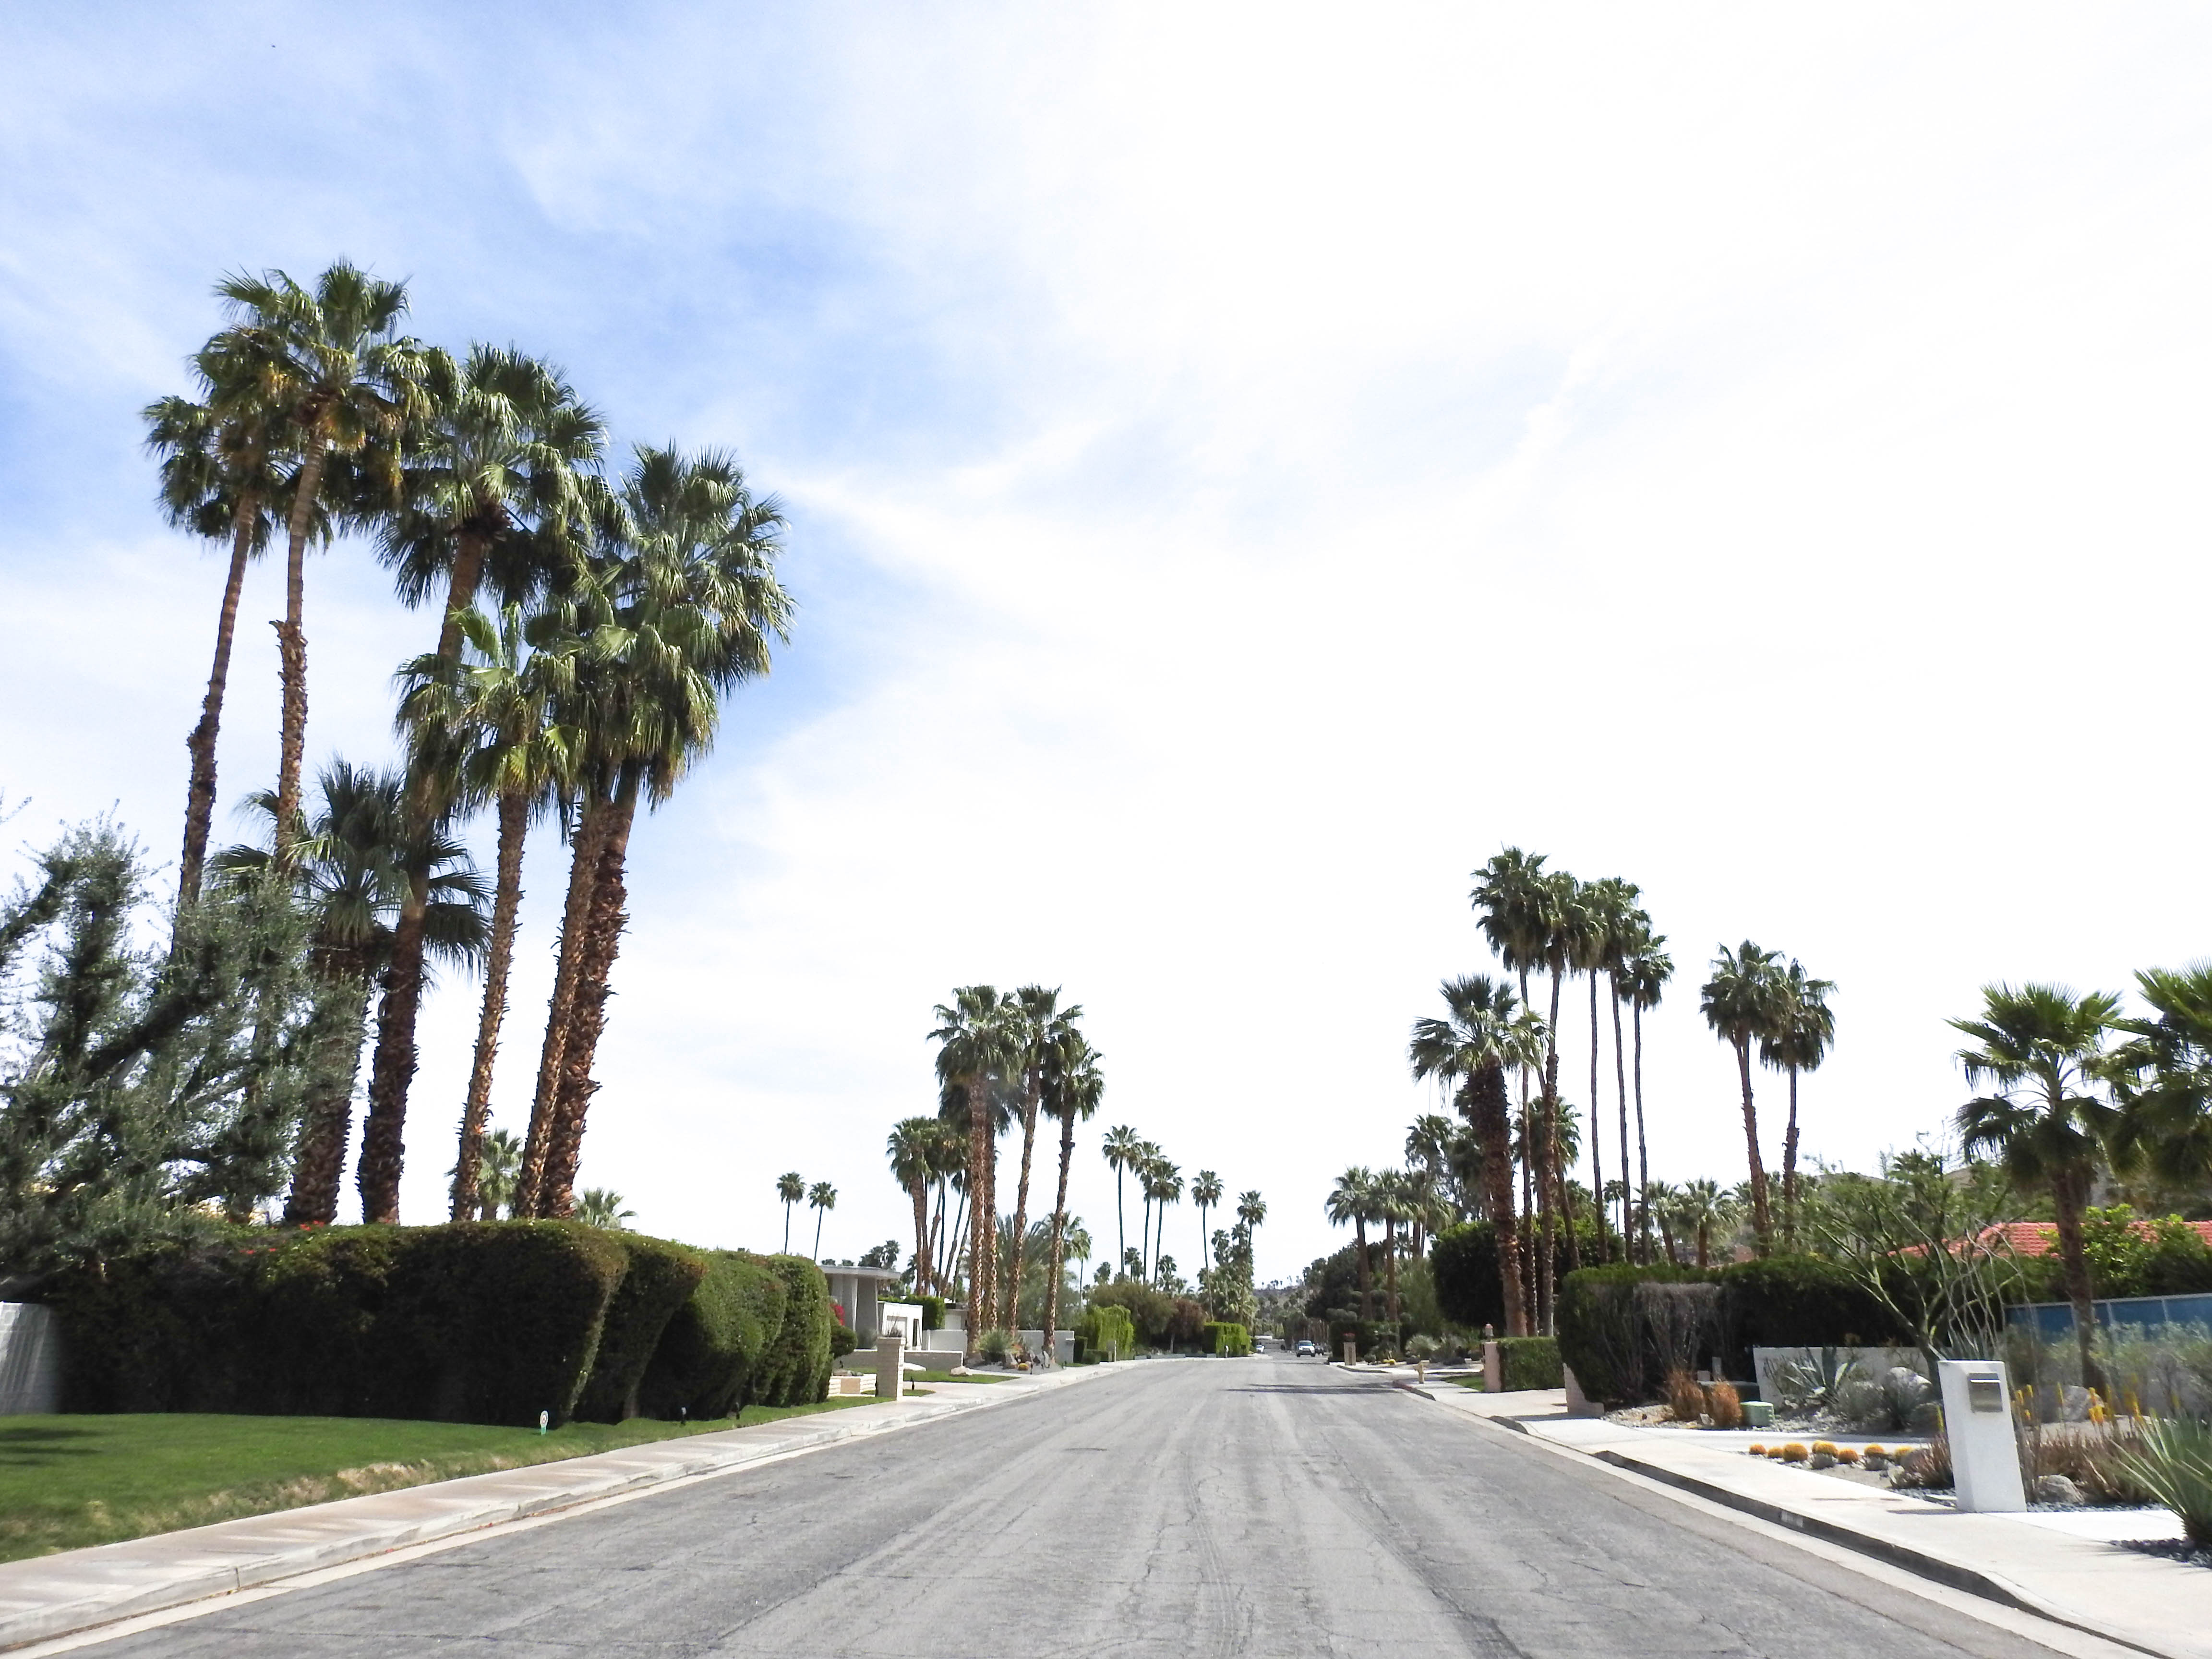 Streets of Palm Springs